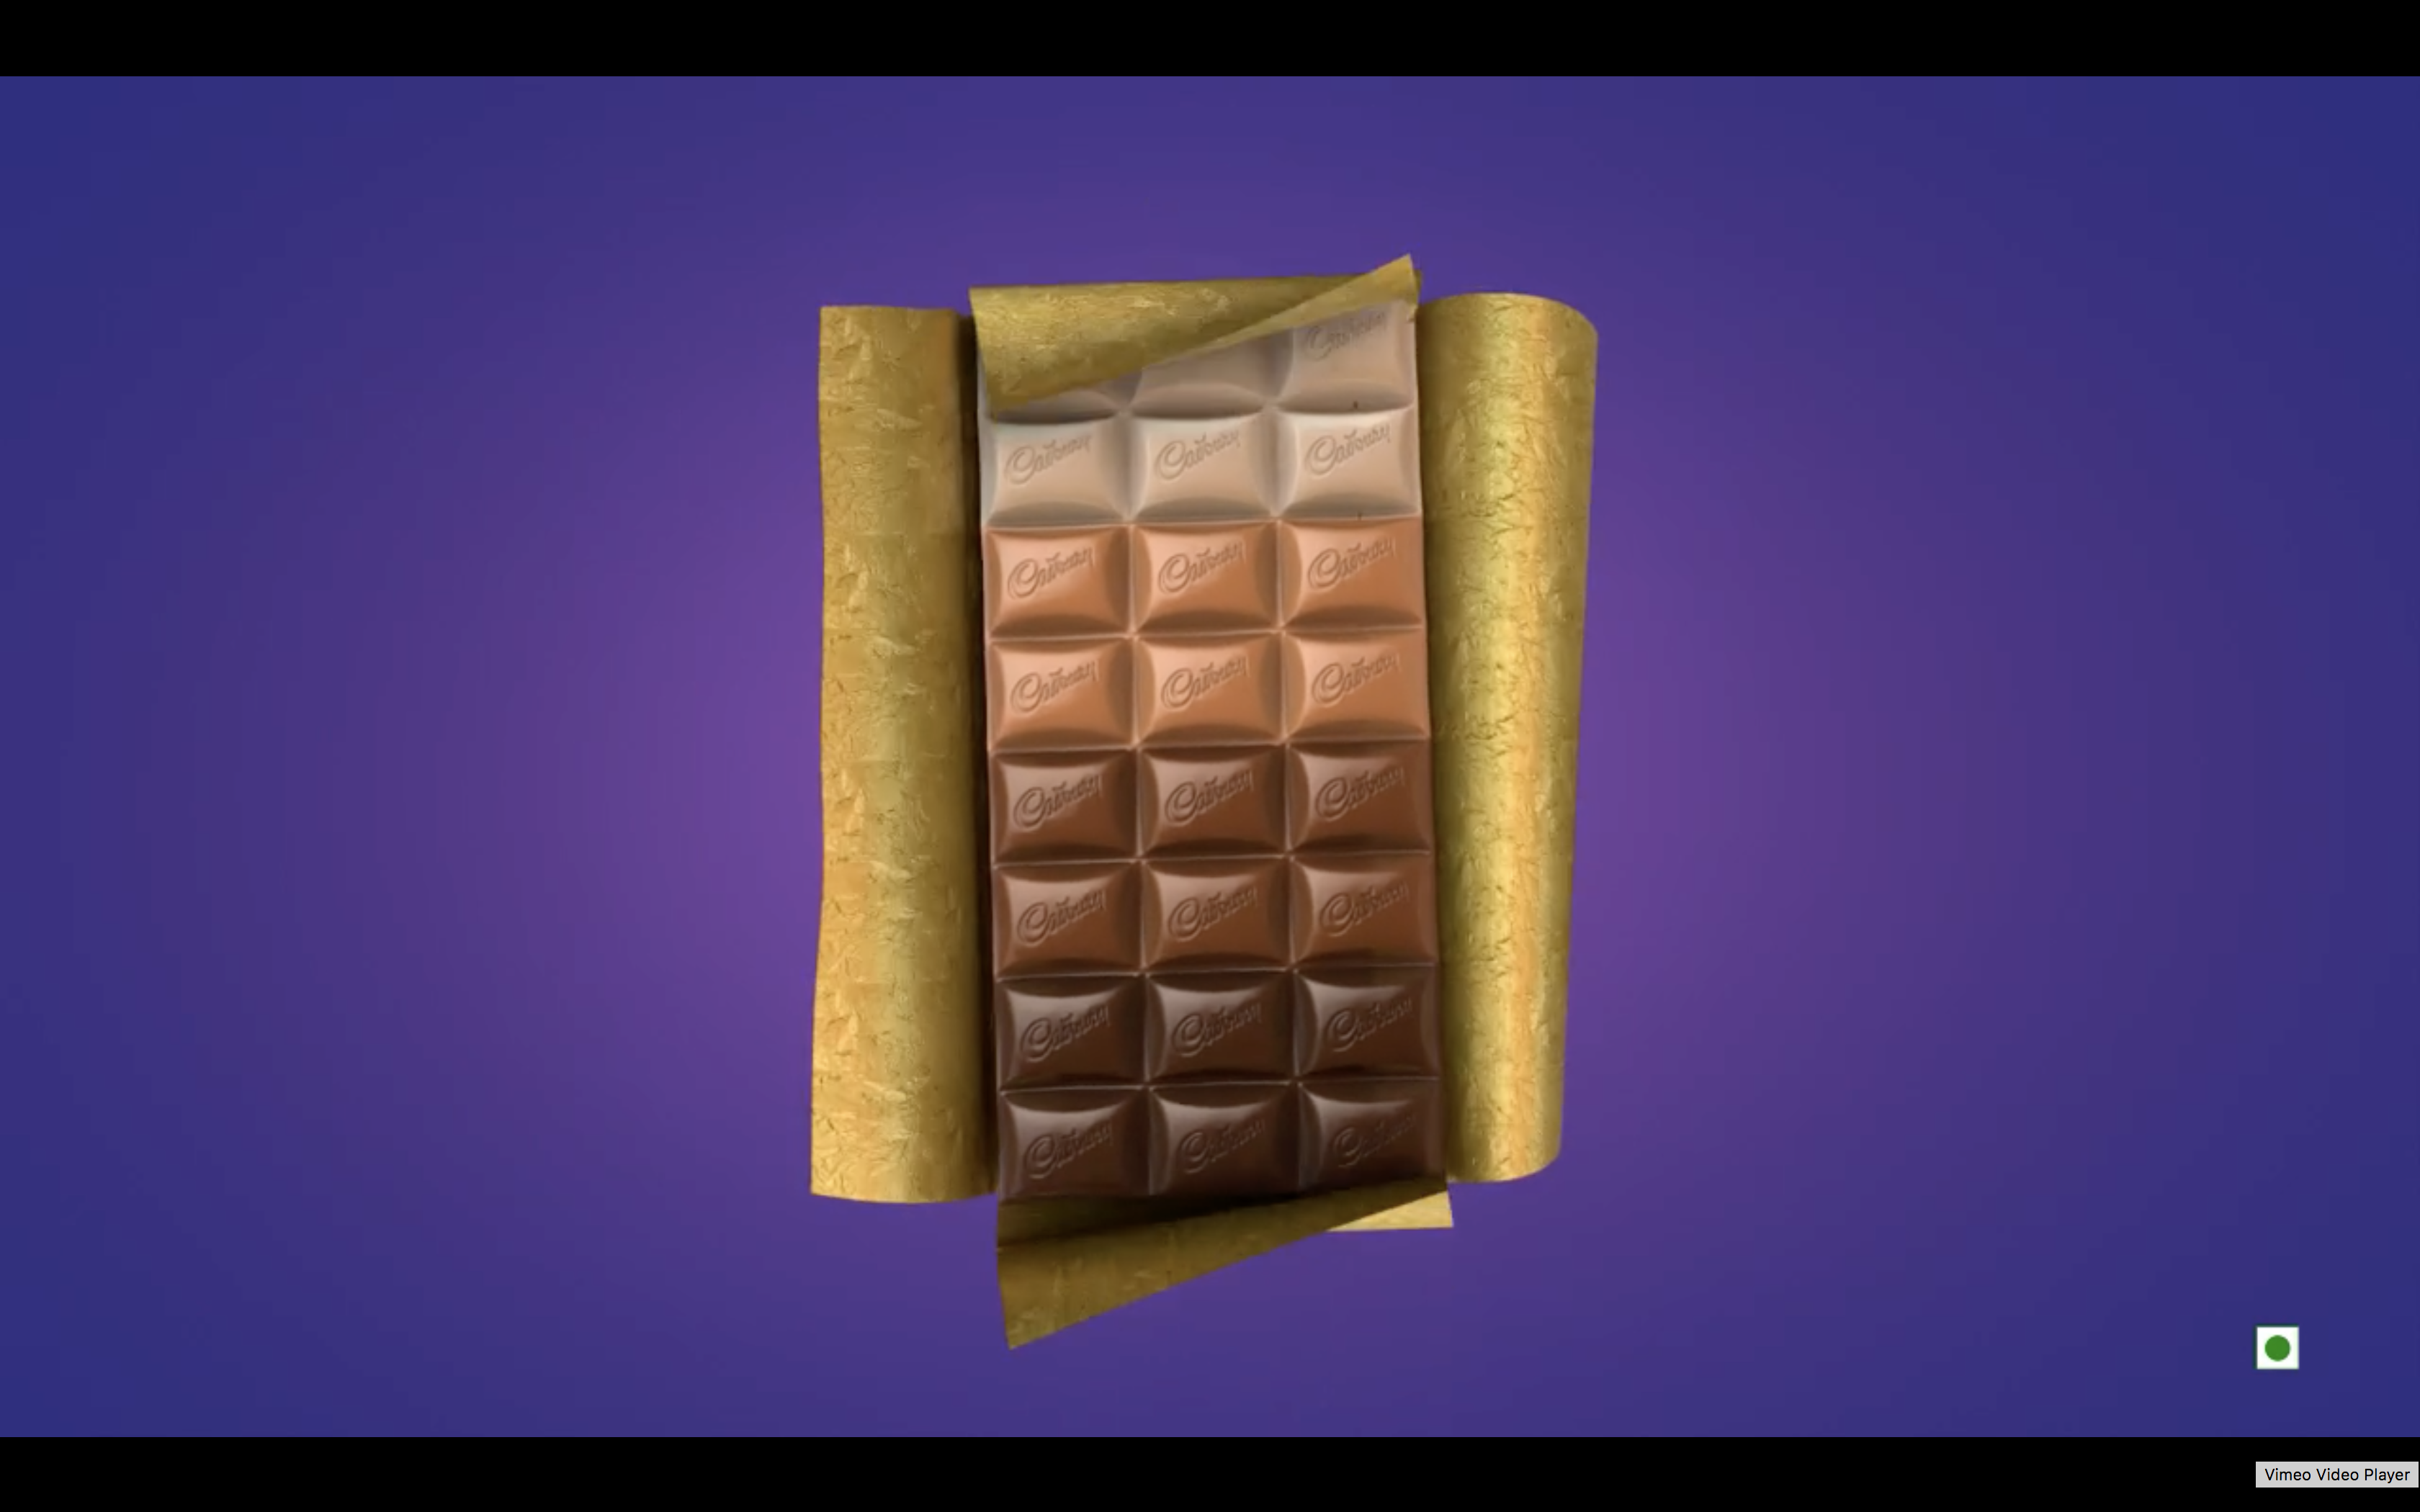 Cabury Made A Chocolate Bar That Has Four Different Types Of Chocolate In It